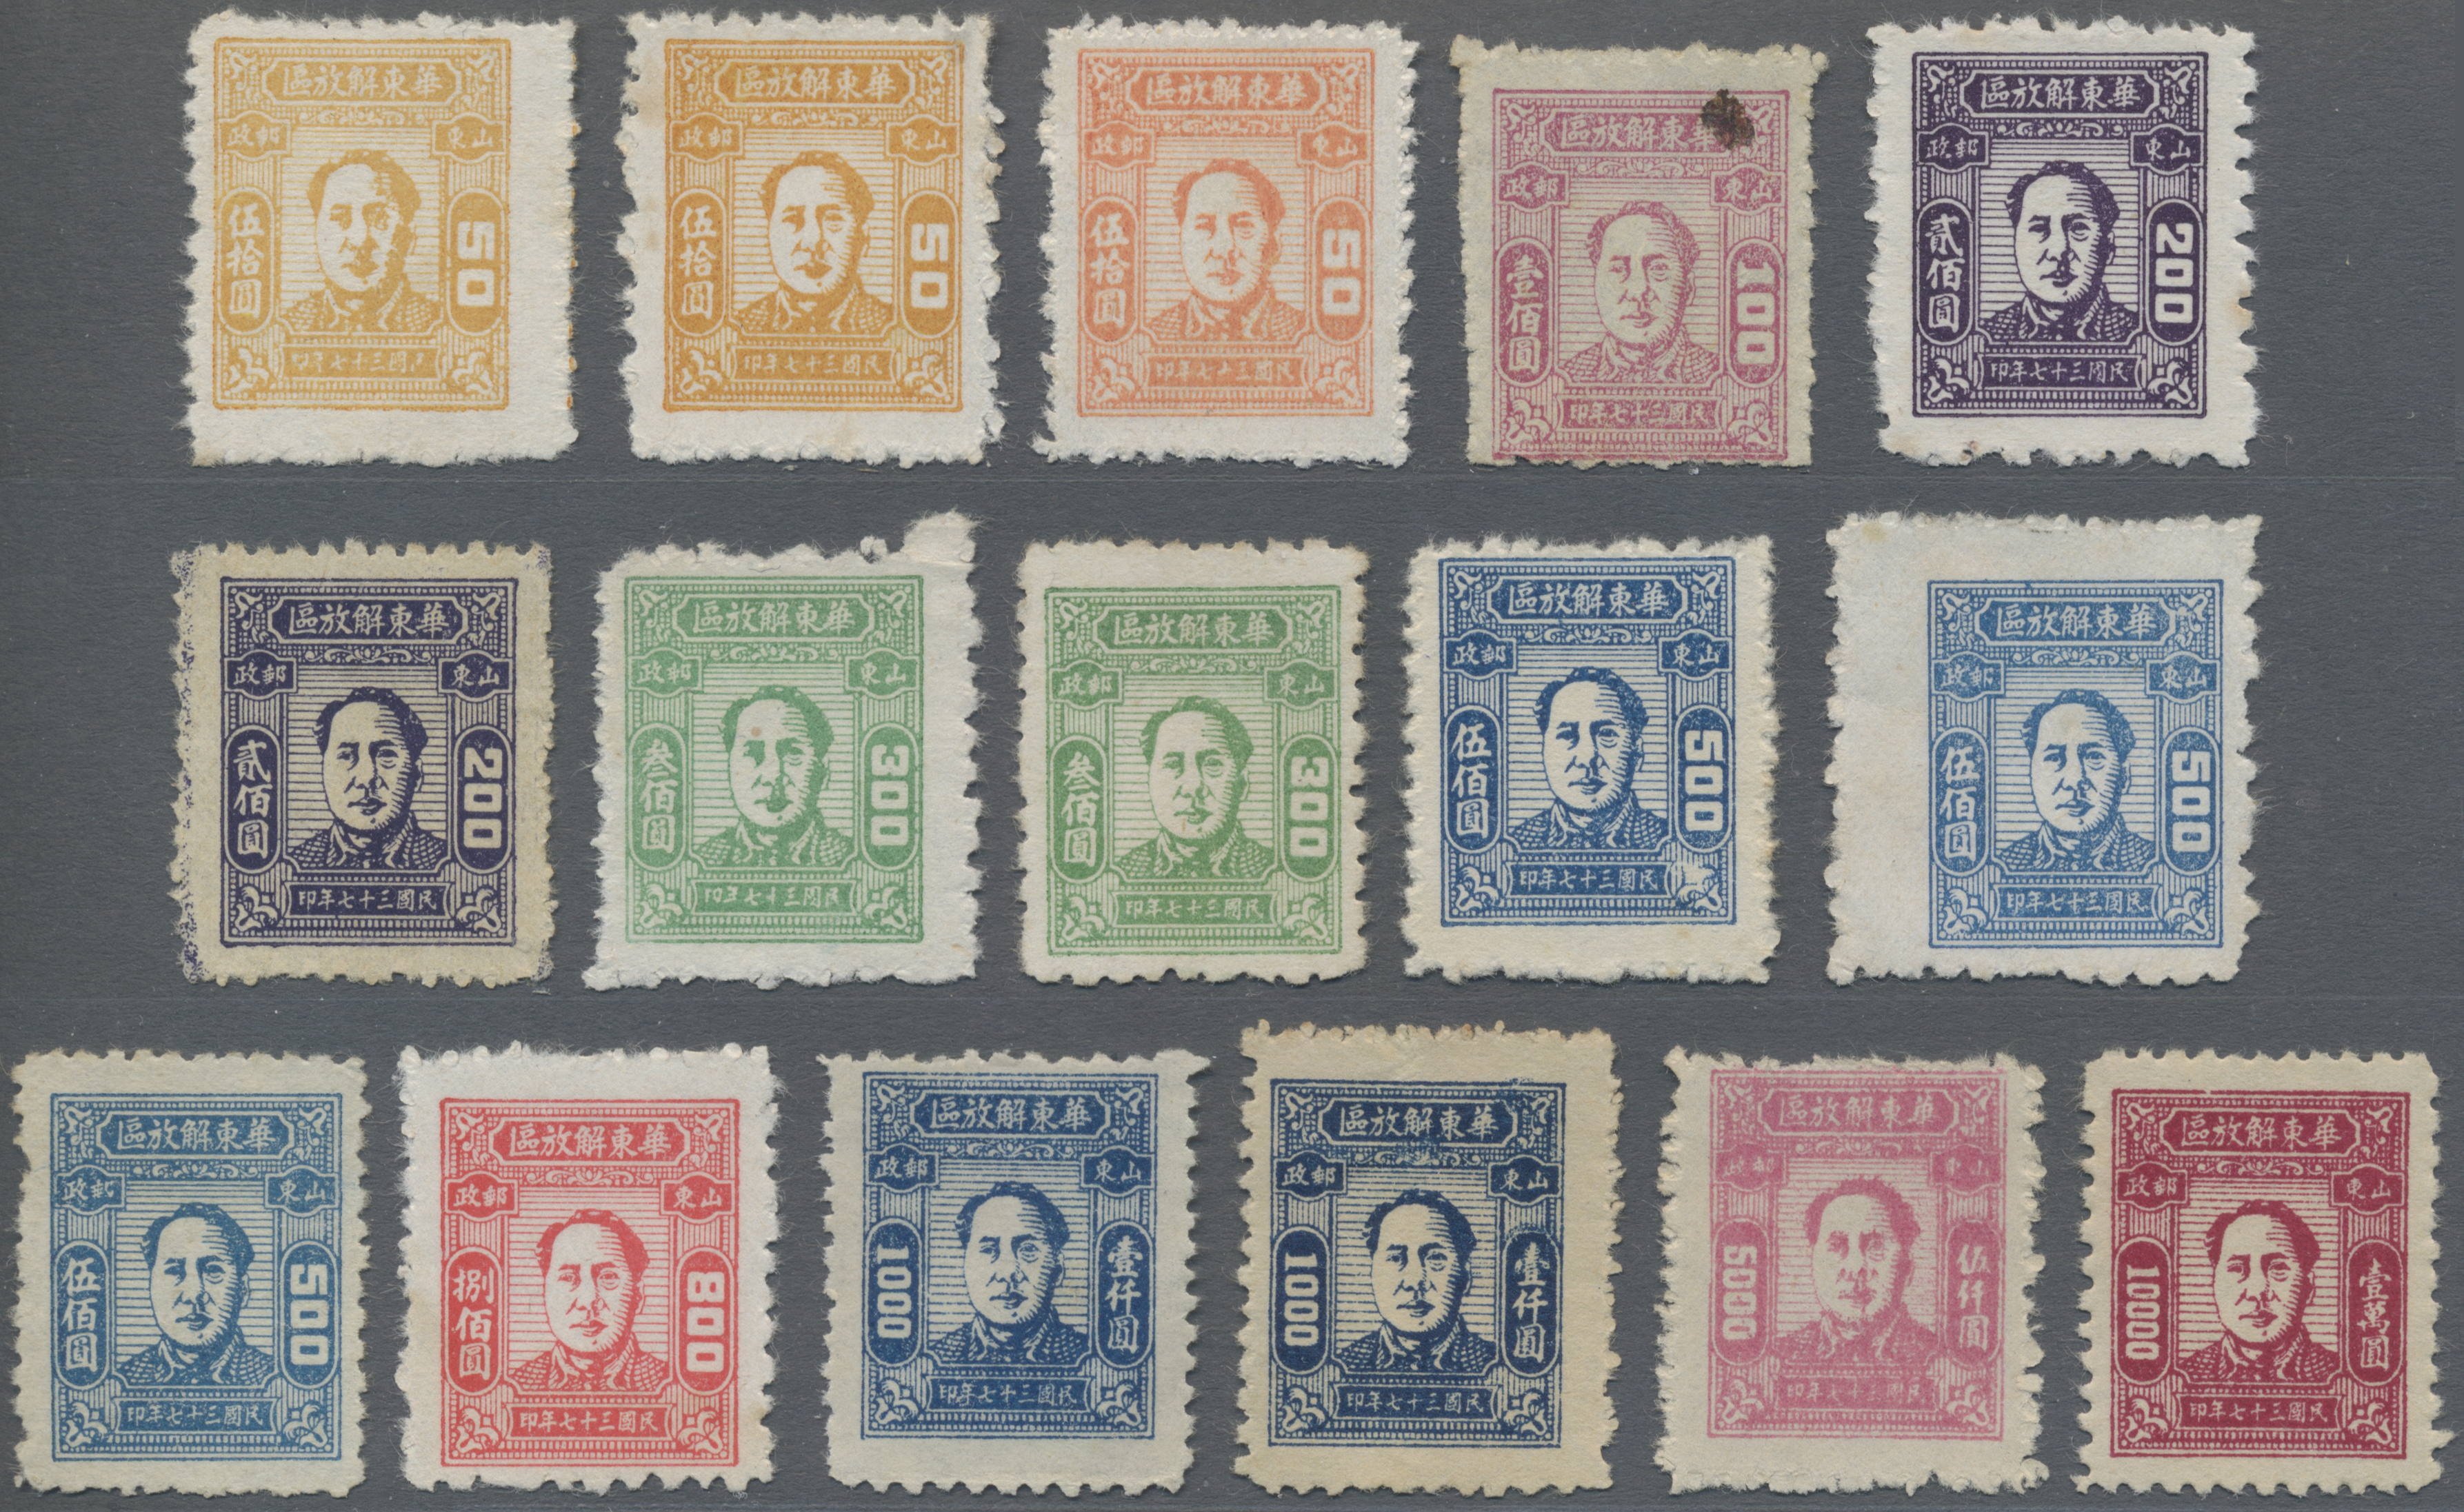 Lot 05089 - China - Volksrepublik - Provinzen  -  Auktionshaus Christoph Gärtner GmbH & Co. KG Sale #46 Special Auction China - including Liberated Areas